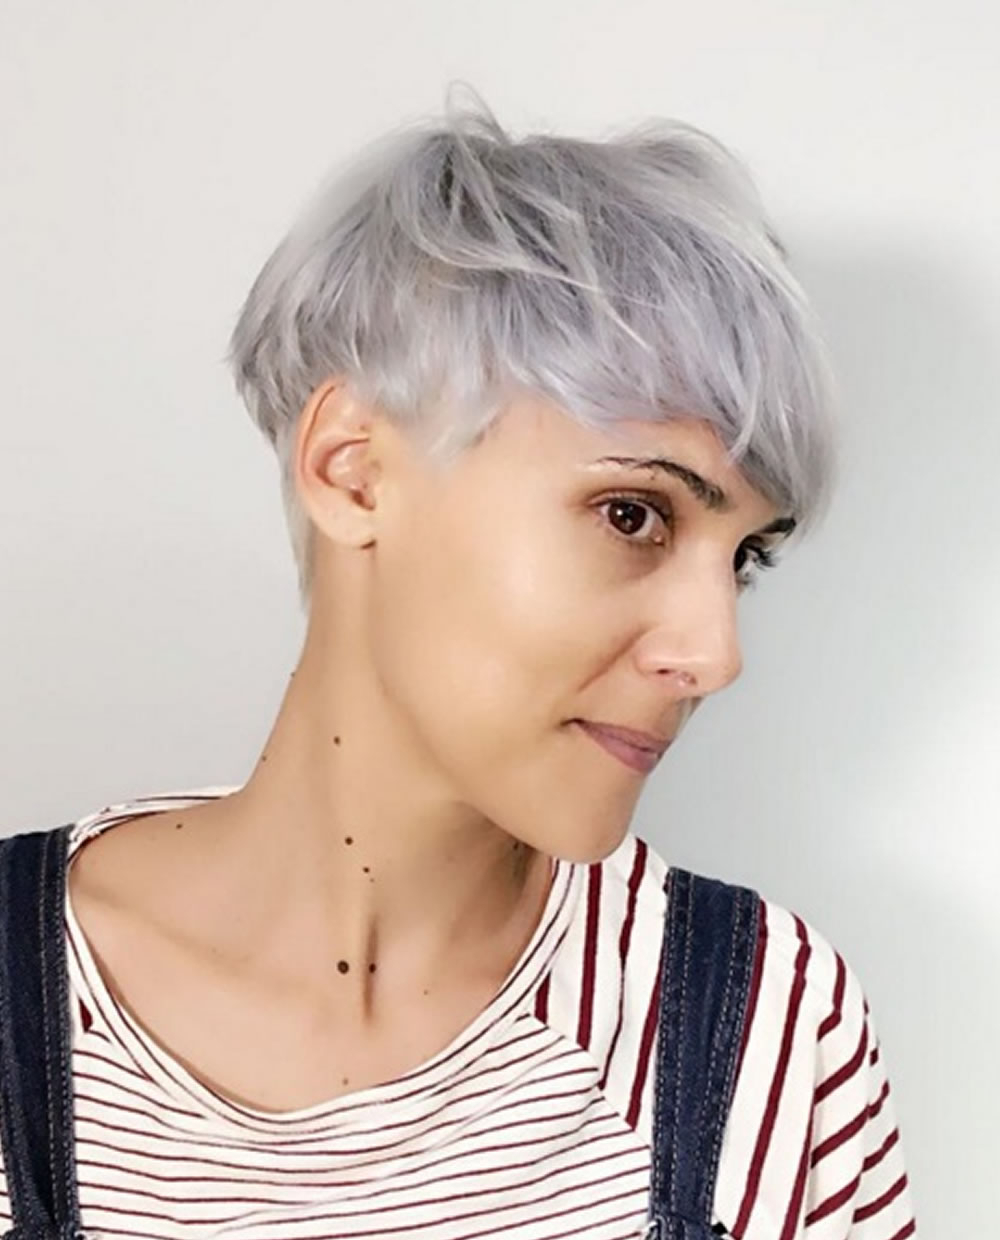 Grey Pixie Hair Cut & Gray Hair Colors For Short Hair 2018 Pertaining To Recent Gray Short Pixie Cuts (View 6 of 20)